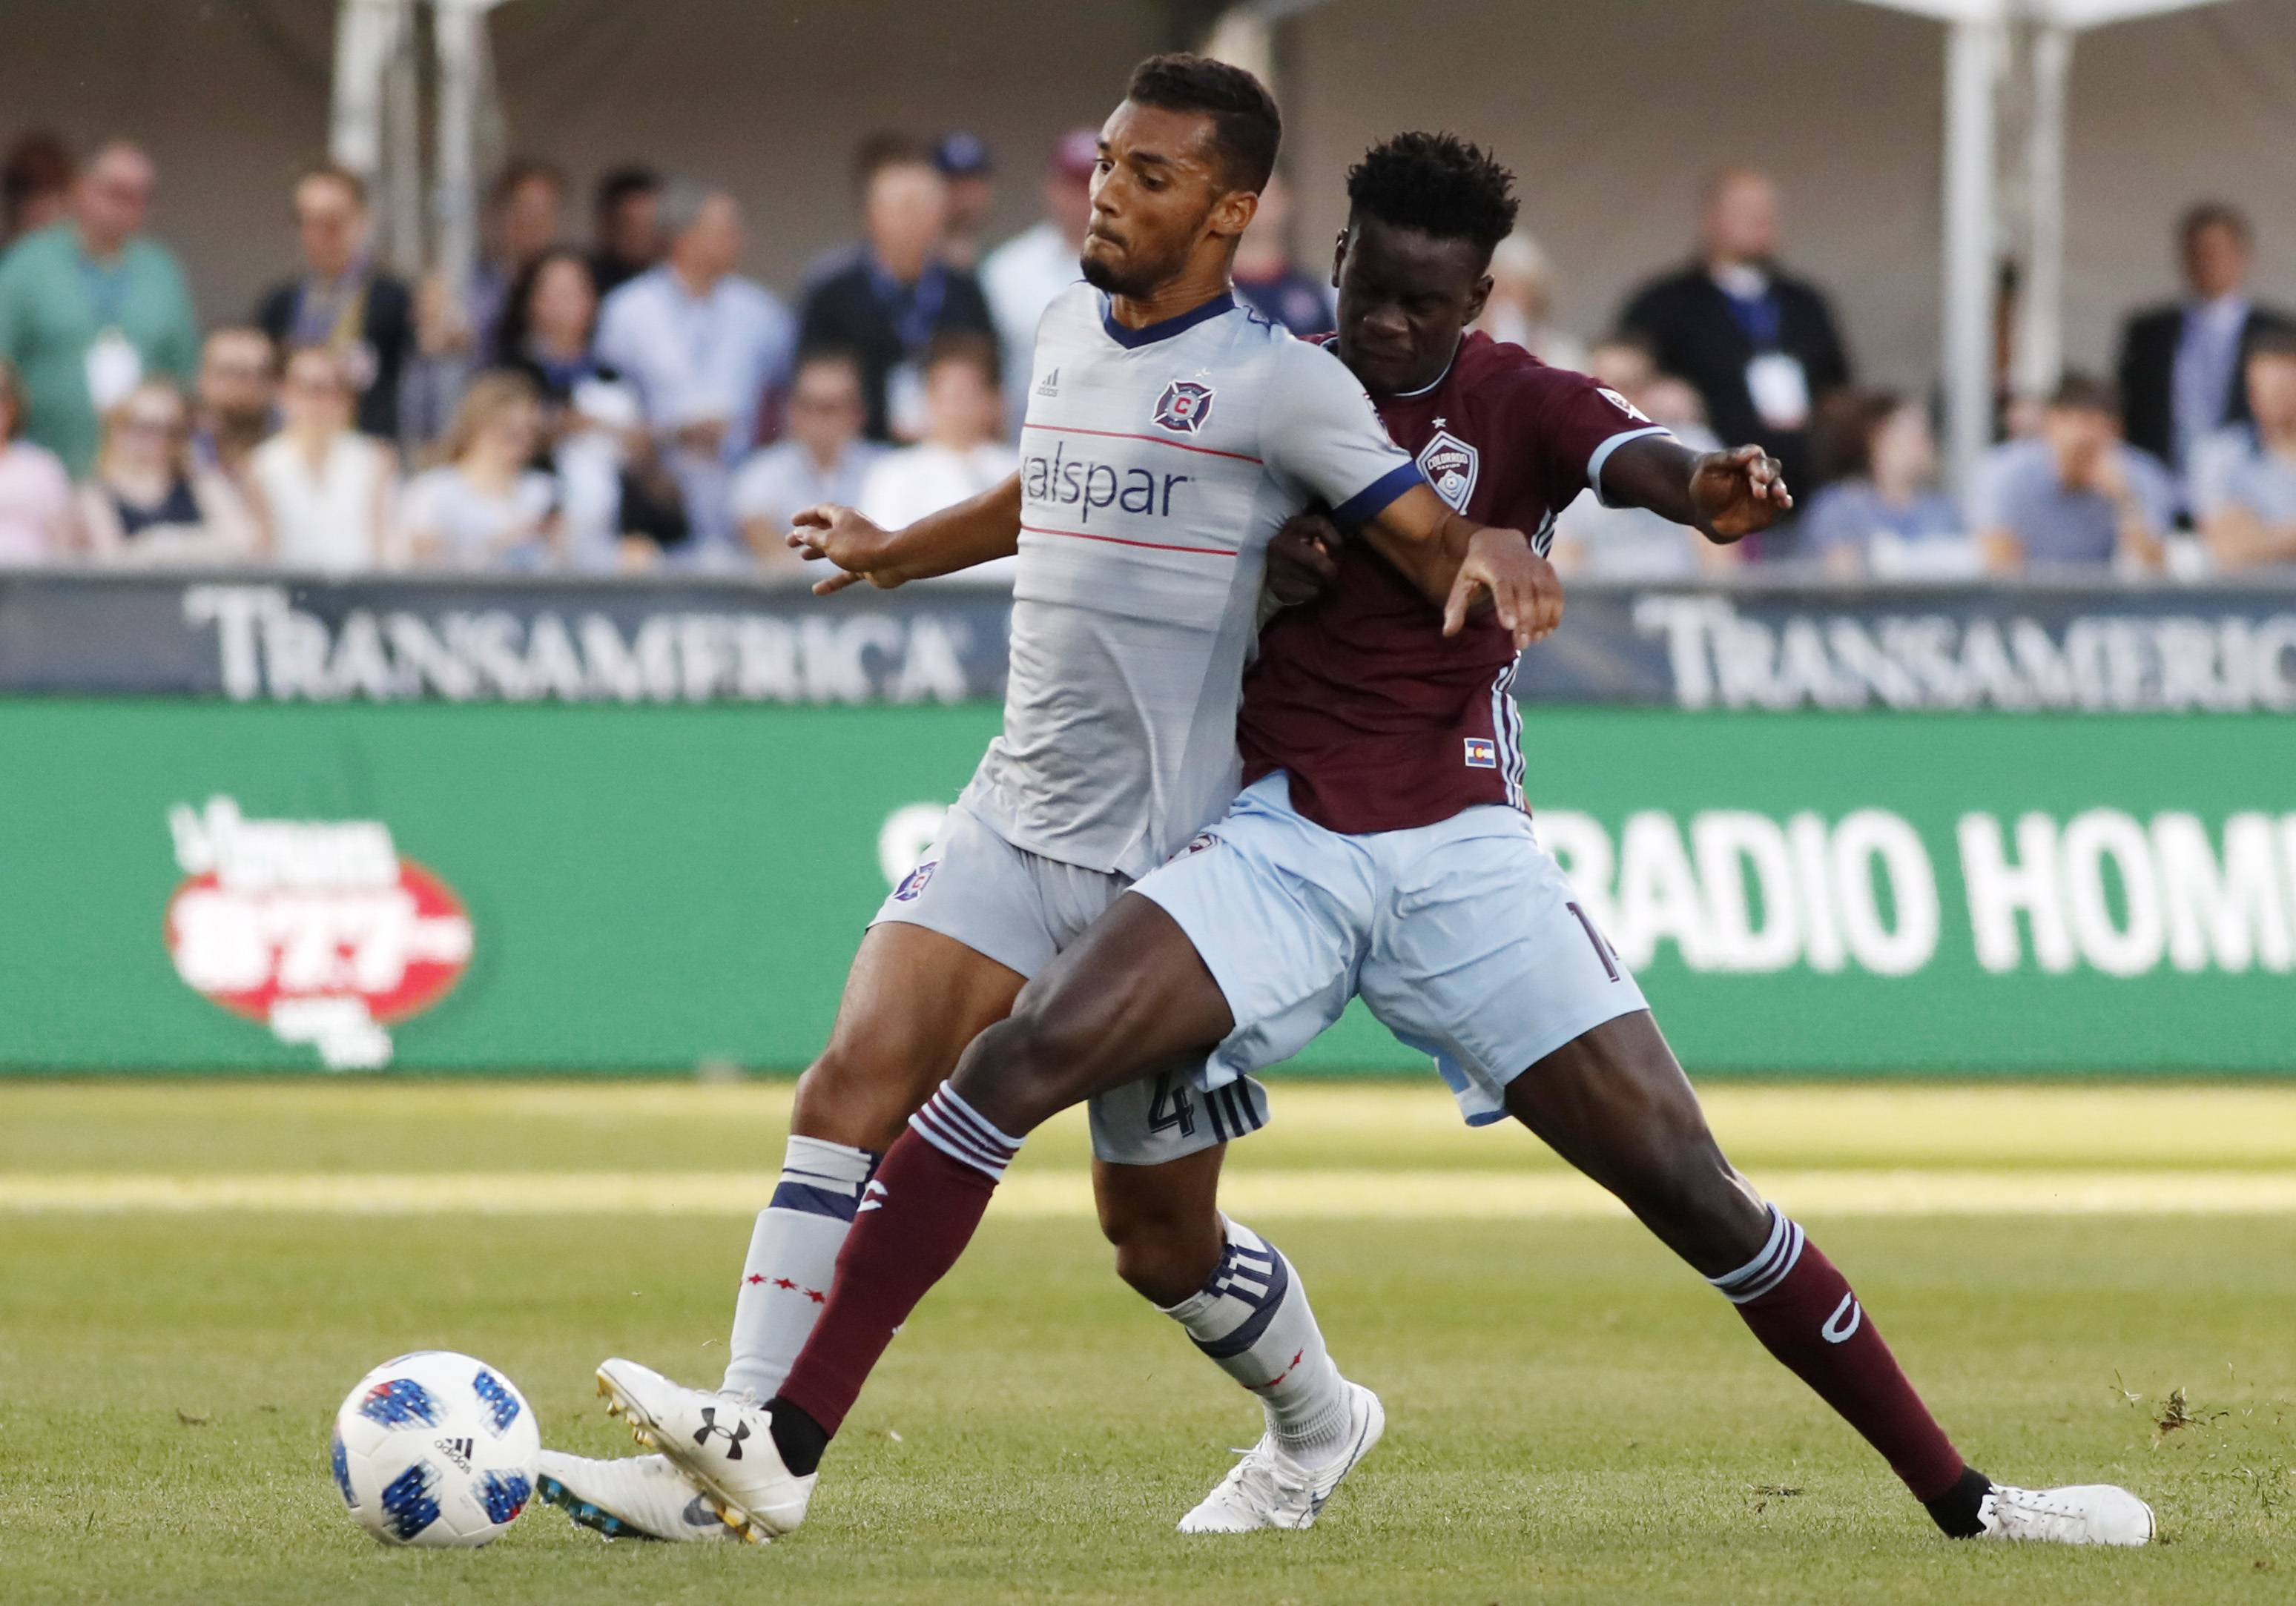 Colorado Rapids forward Dominique Badji, right, competes for control of the ball with Chicago Fire defender Johan Kappelhof during the first half of an MLS soccer match Wednesday, June 13, 2018, in Commerce City, Colo.